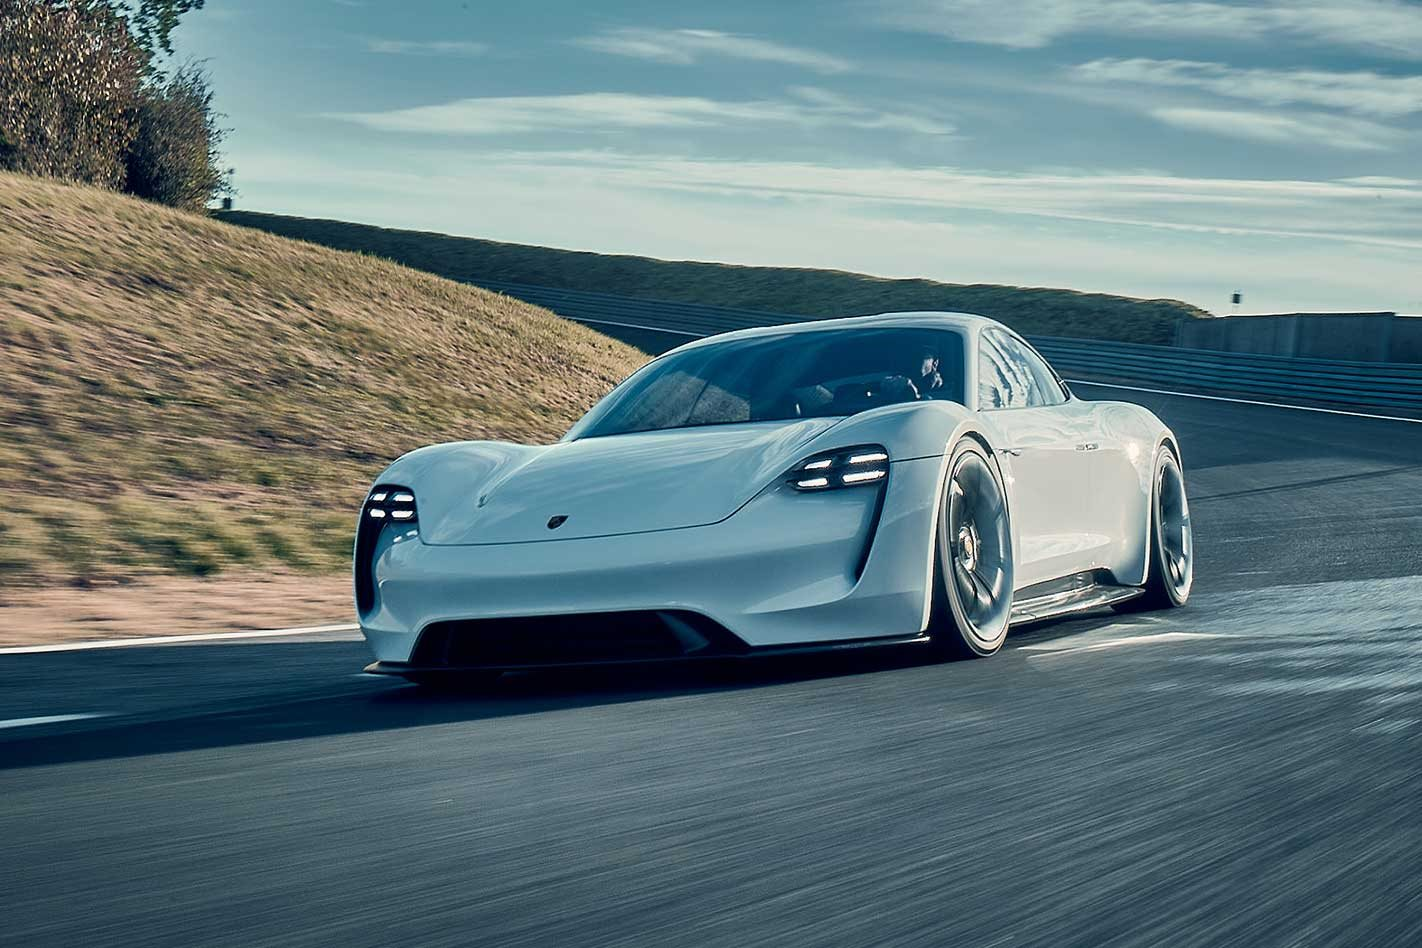 2019 Porsche Taycan What We Know So Far